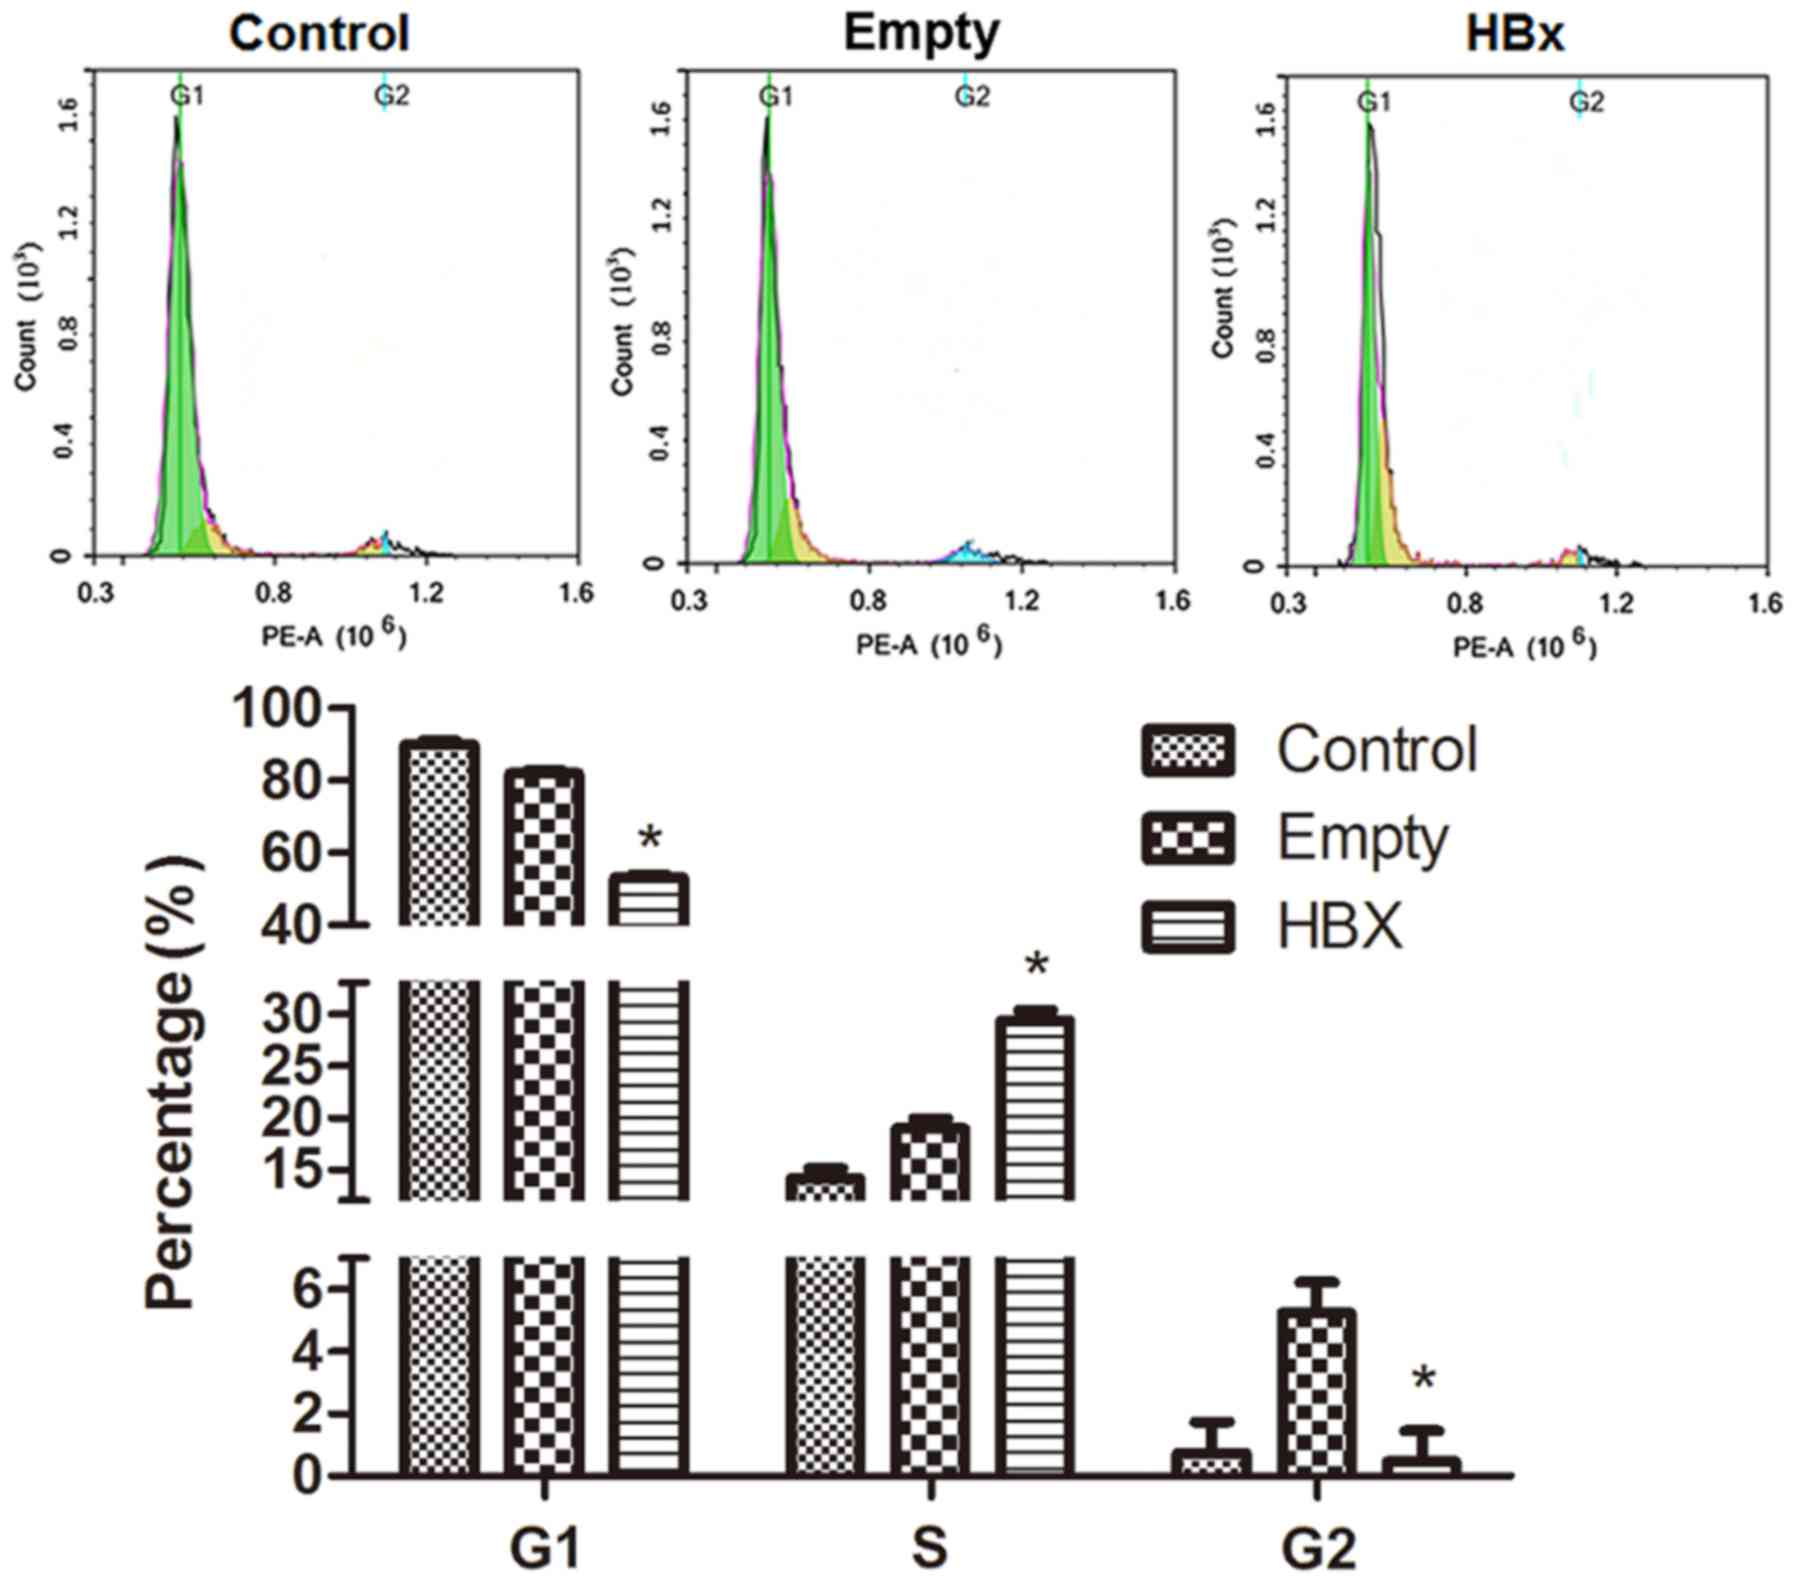 Hbx Gene Transfection Affects The Cycle Of Primary Renal Tubular Epithelial Cells Through